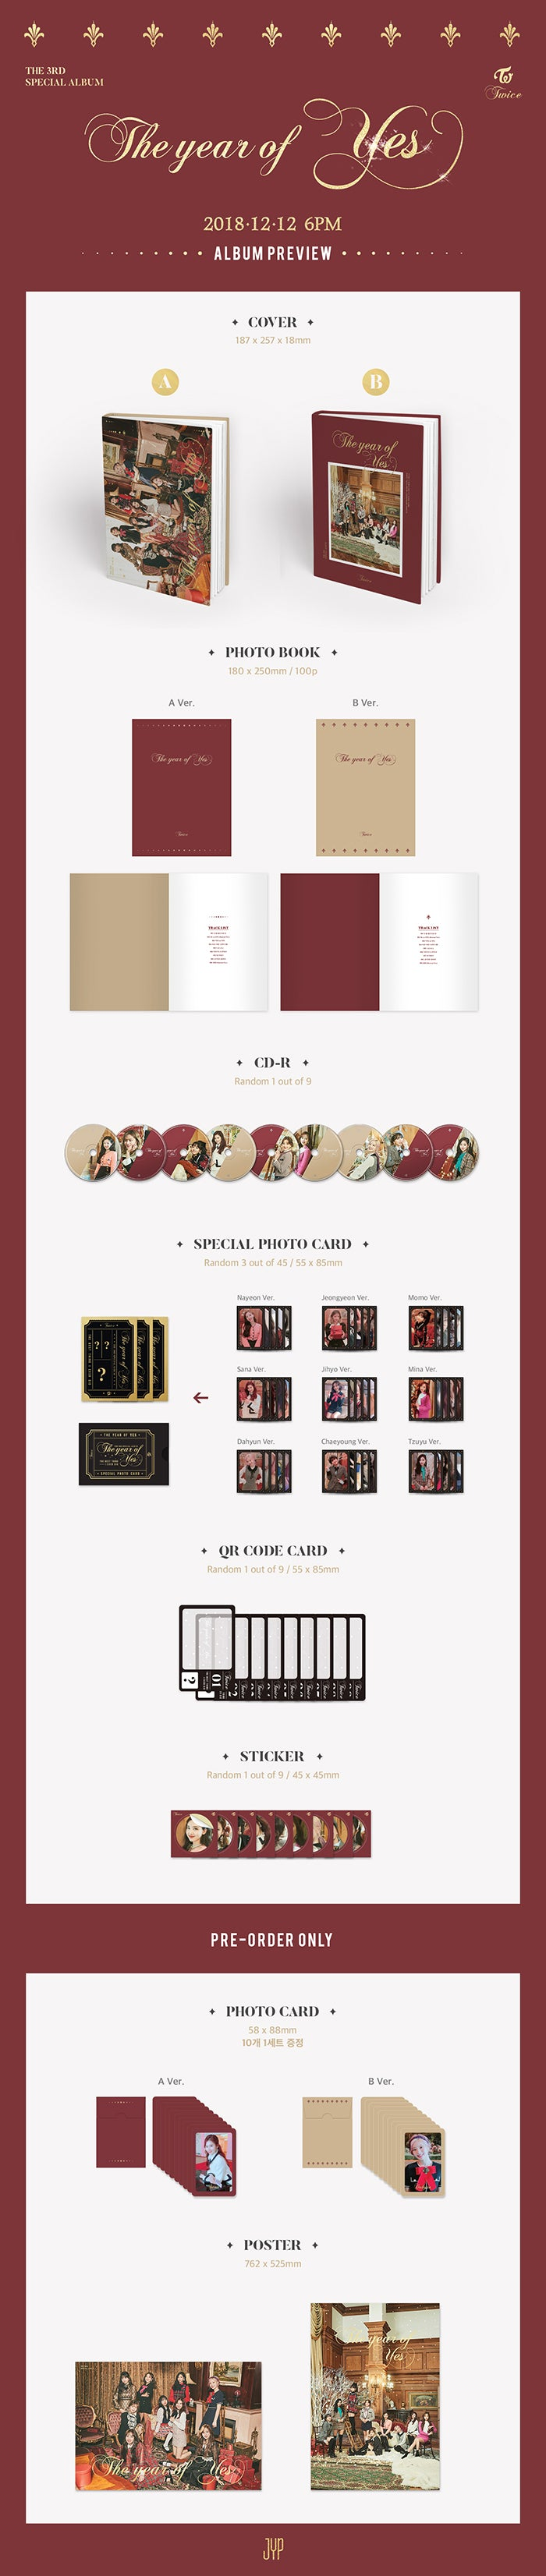 TWICE 3RD SPECIAL ALBUM 'THE YEAR OF YES' + POSTER